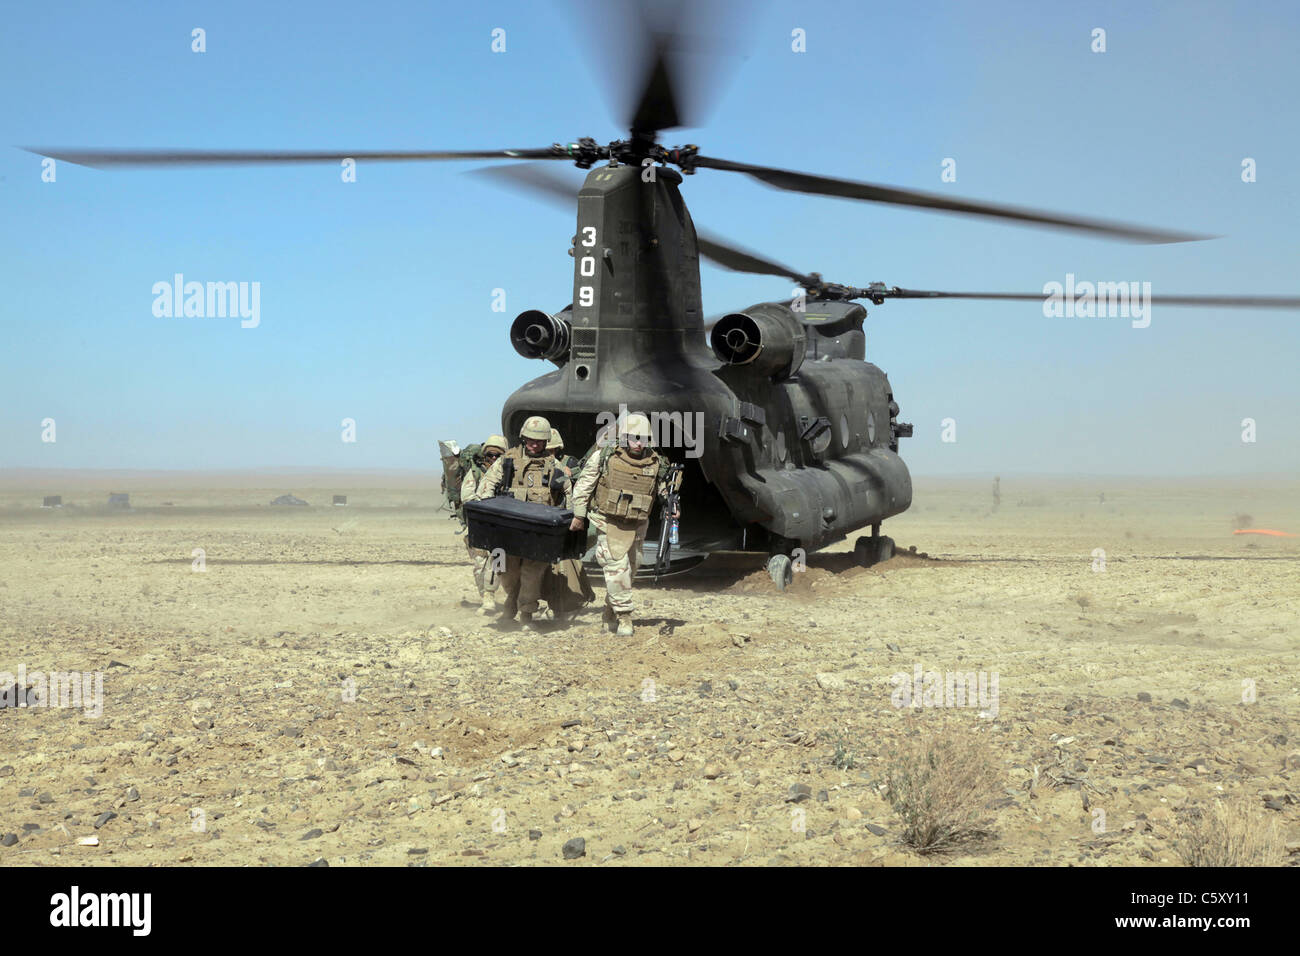 Navy SEABEES depart a CH-47 Chinook helicopter in the Shorabak district, Kandahar province, Afghanistan. - Stock Image